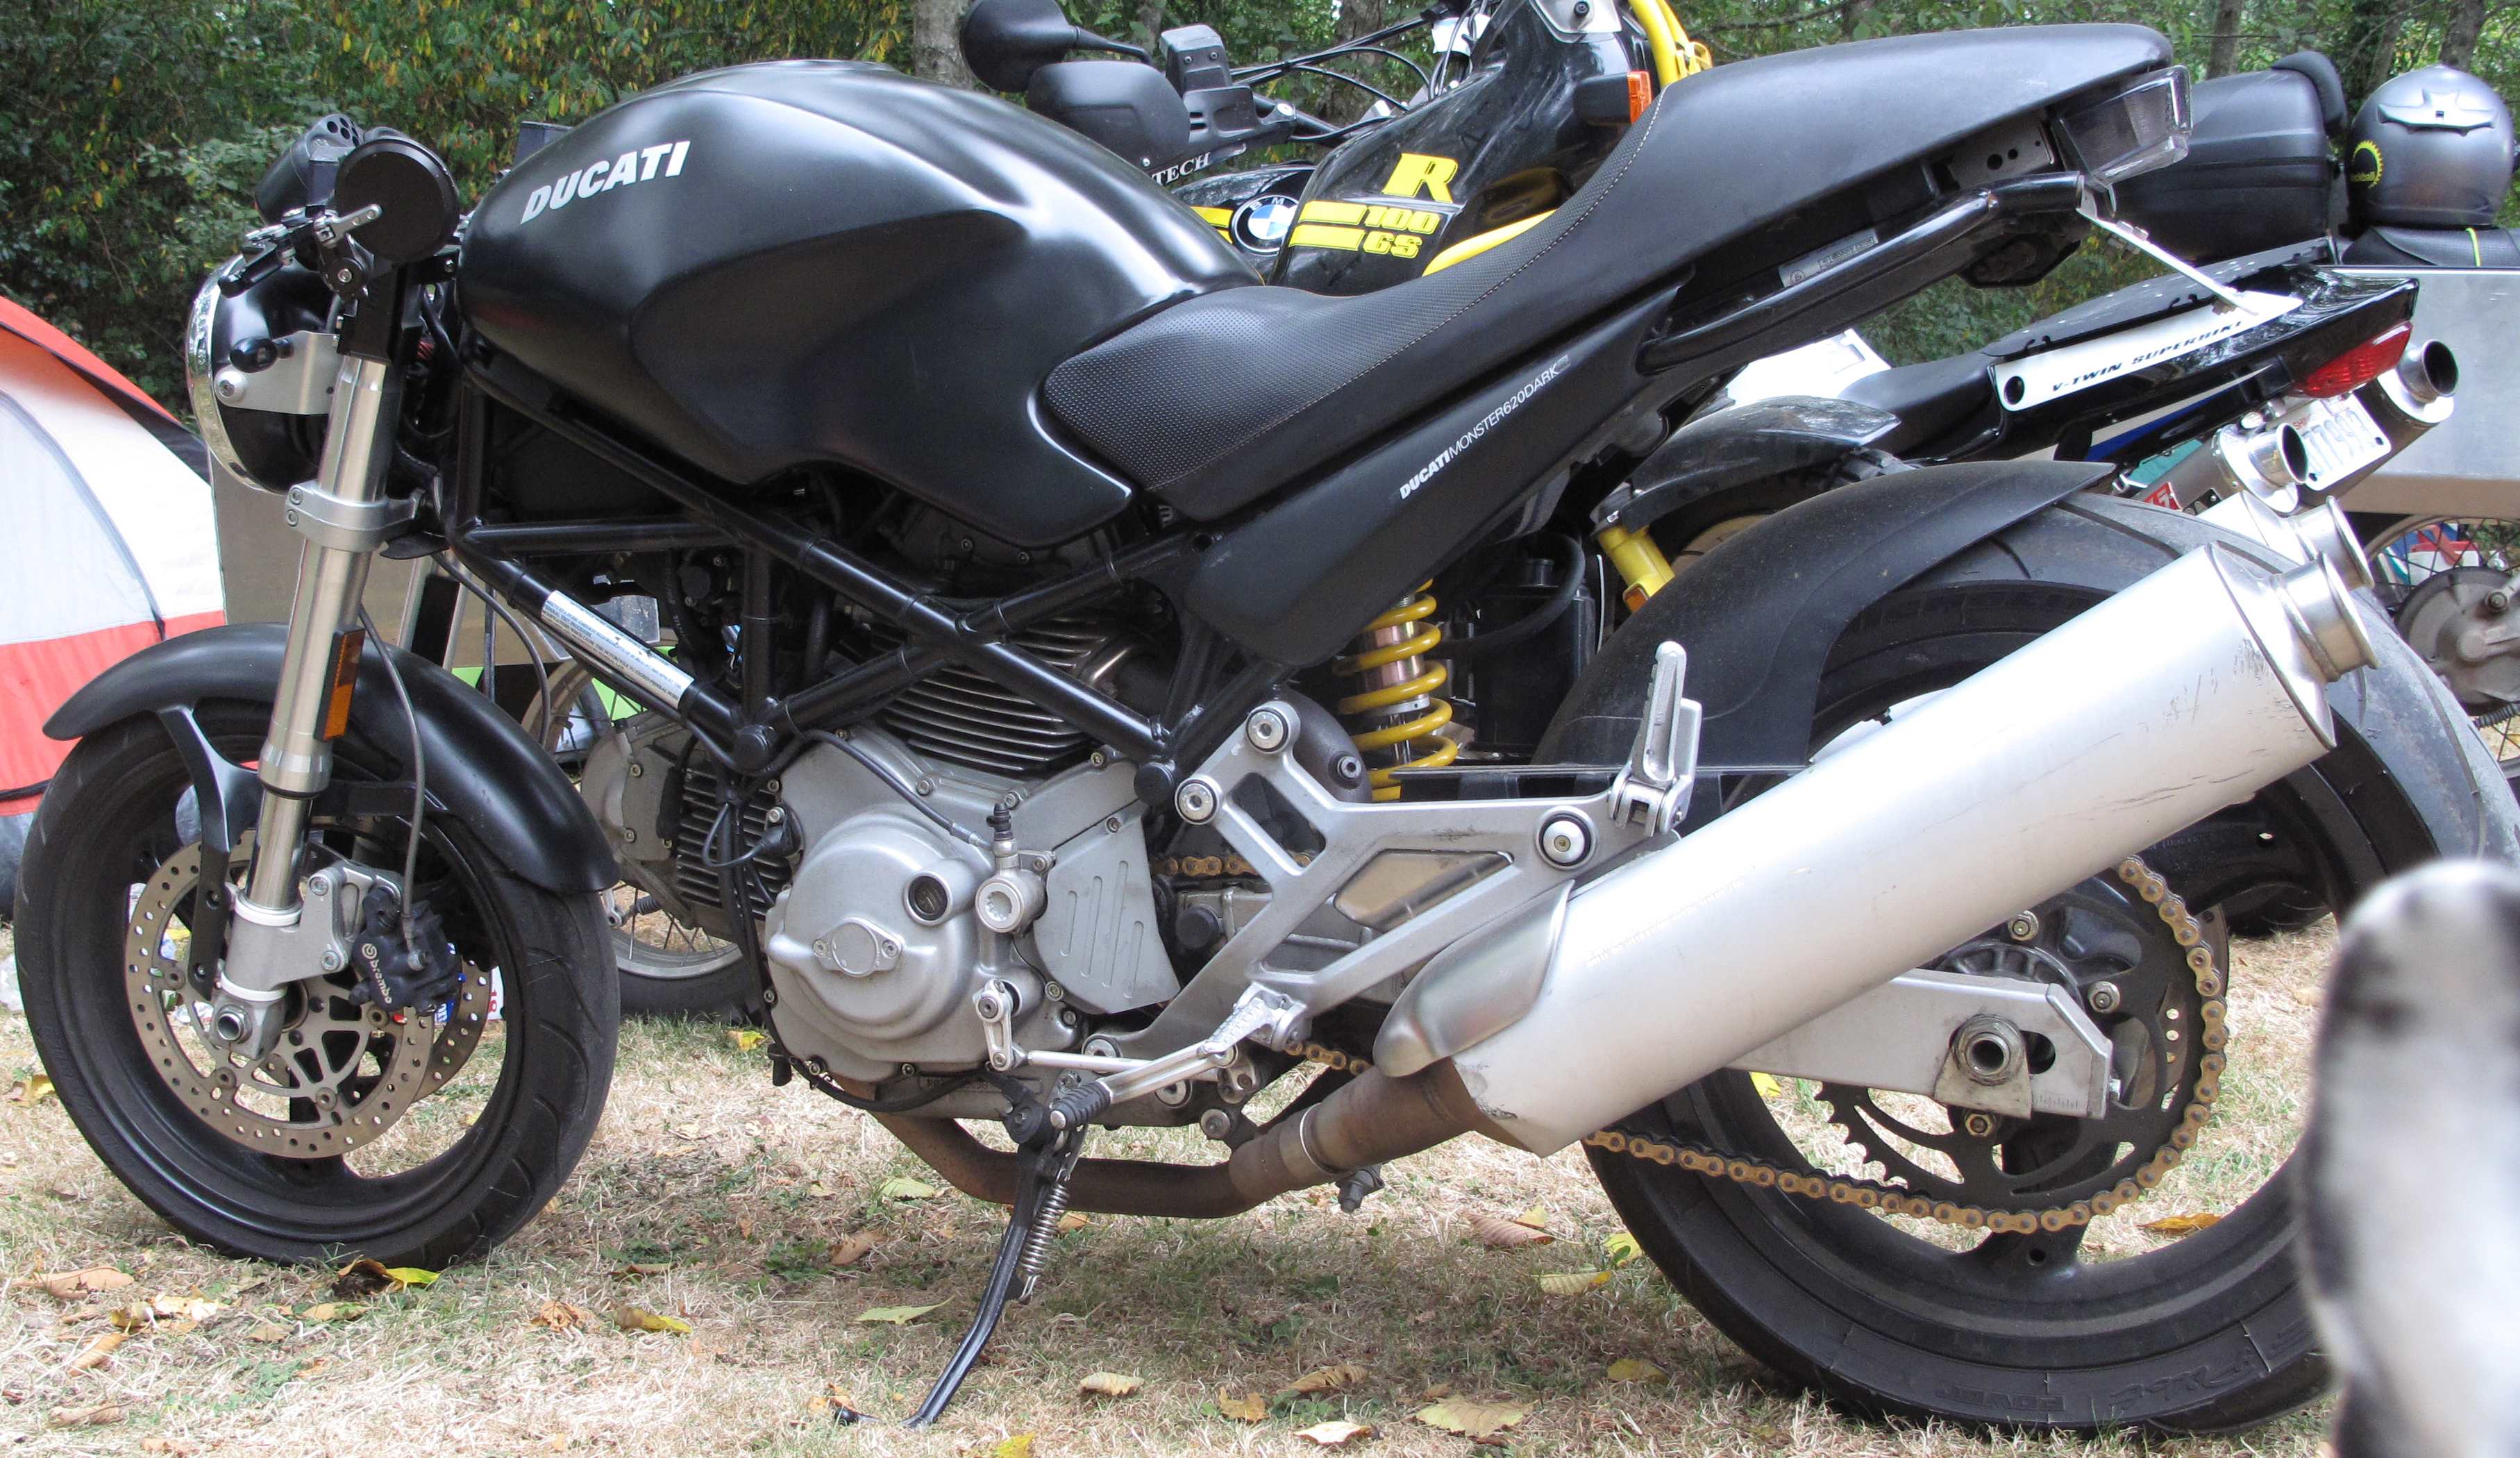 2006 Ducati Monster 620 Dark #6